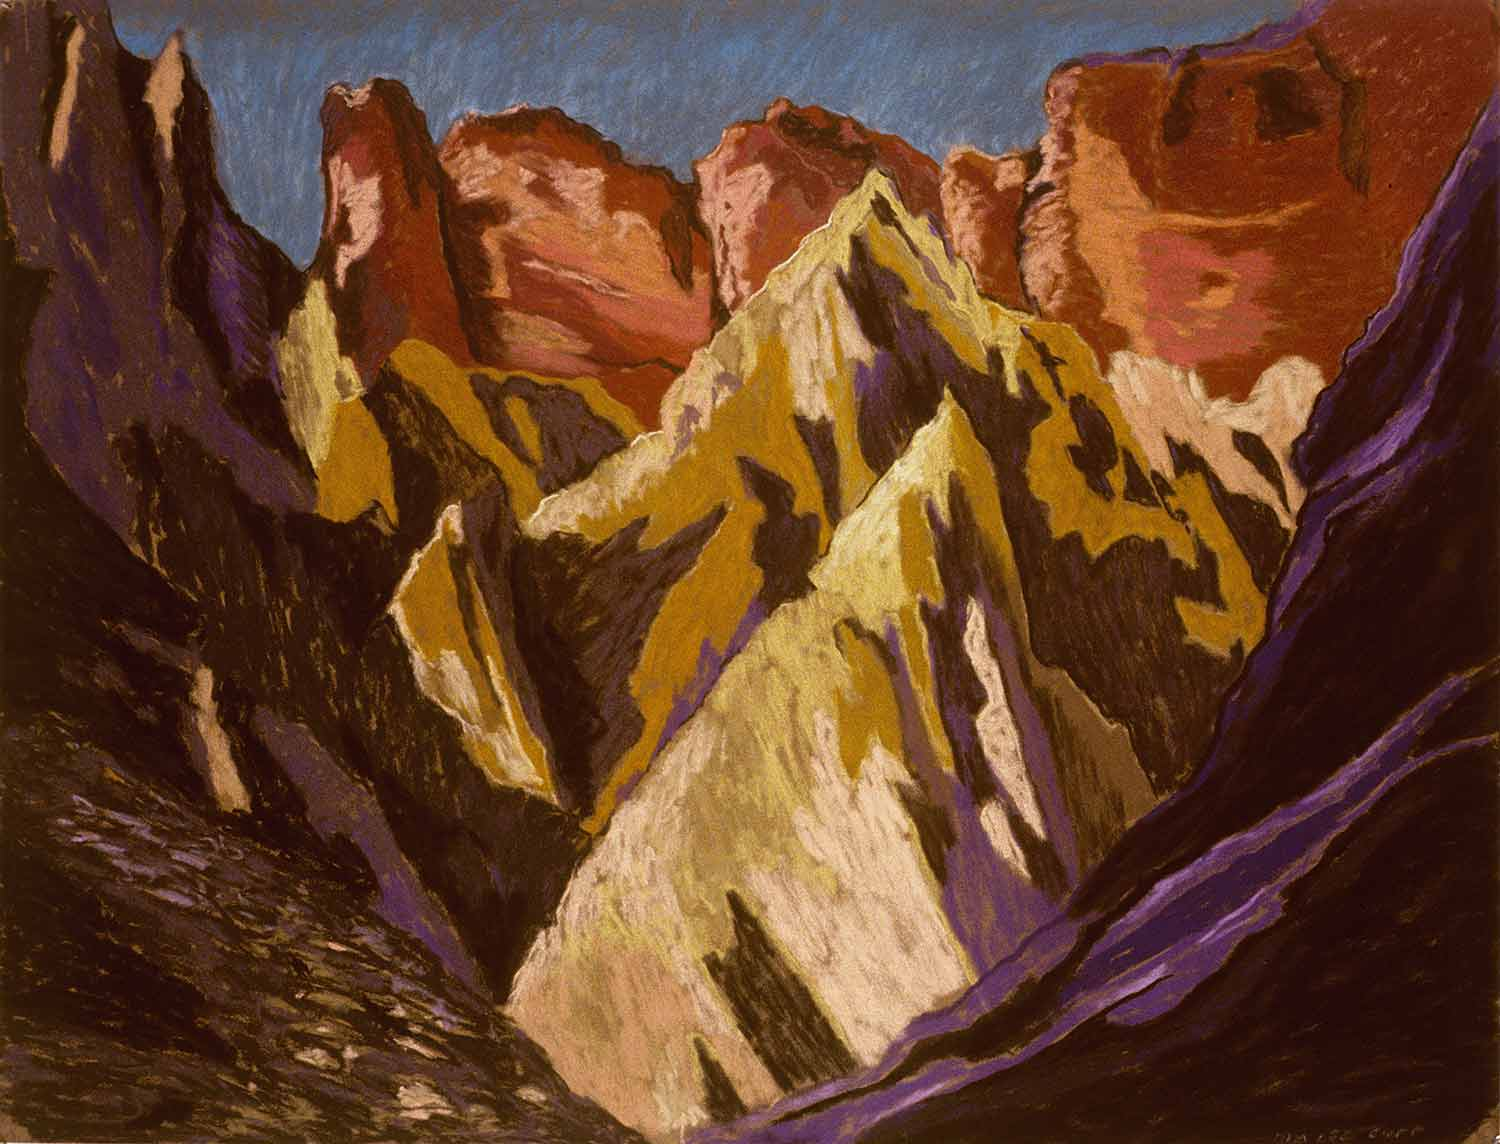 Grand Canyon #6, Oil pastel on paper by Mary Alice Copp